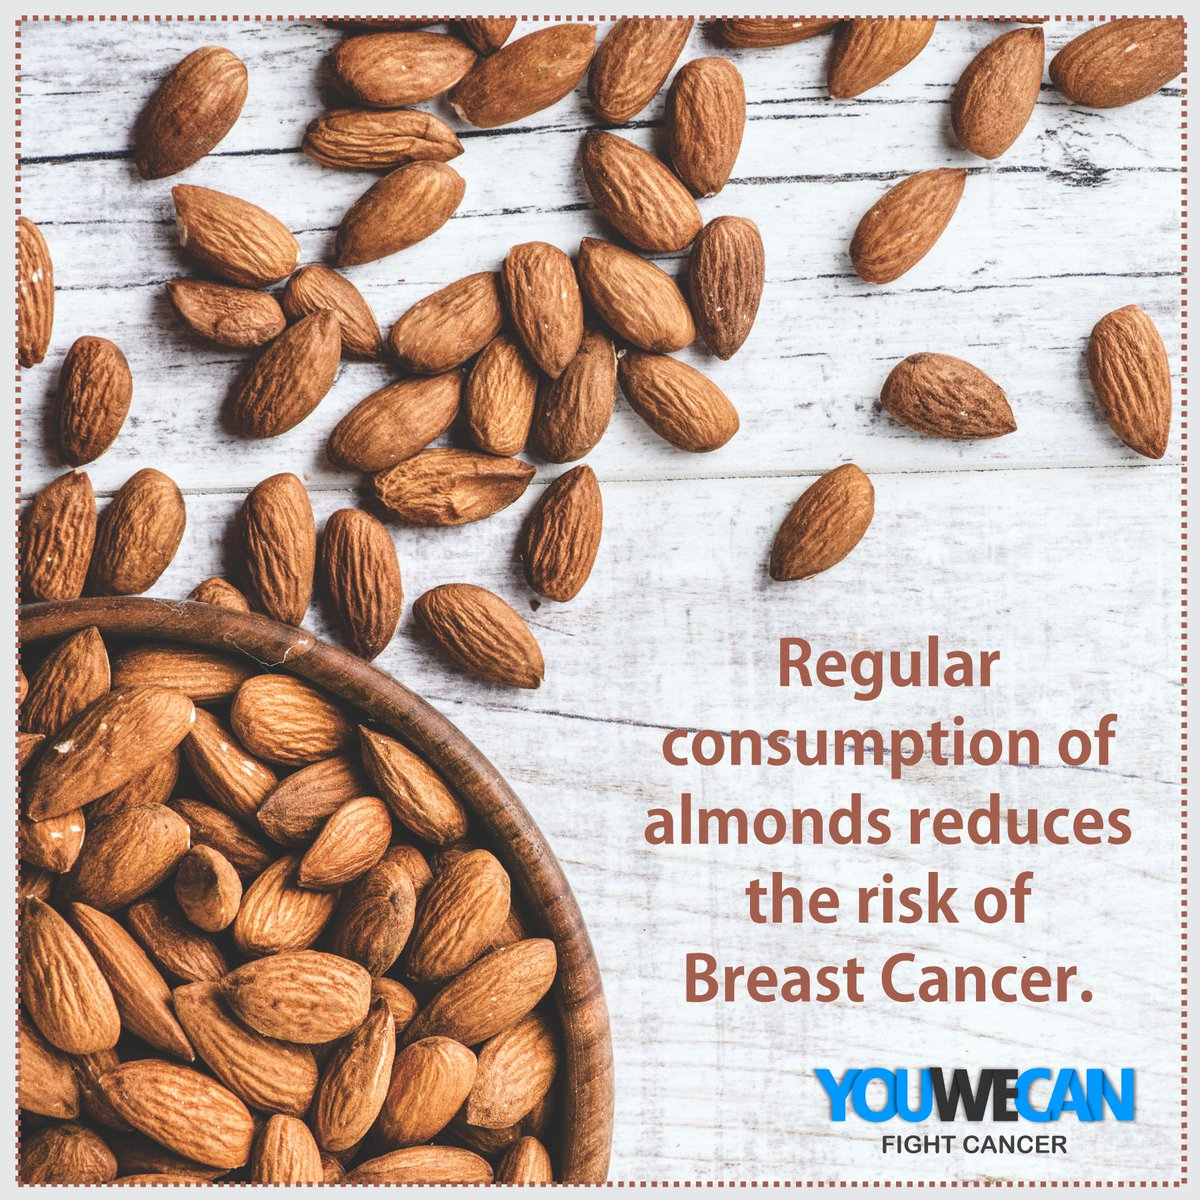 #Almonds are packed with vitamins, minerals, proteins and fibres.Almonds not only reduce the risk of breast cancer but also lowers cholesterol levels.Include 1 ounce or about 20 almonds in your daily #diet !#youwecan #togethwecan #fightcancer@YUVSTRONG12 @hazelkeech